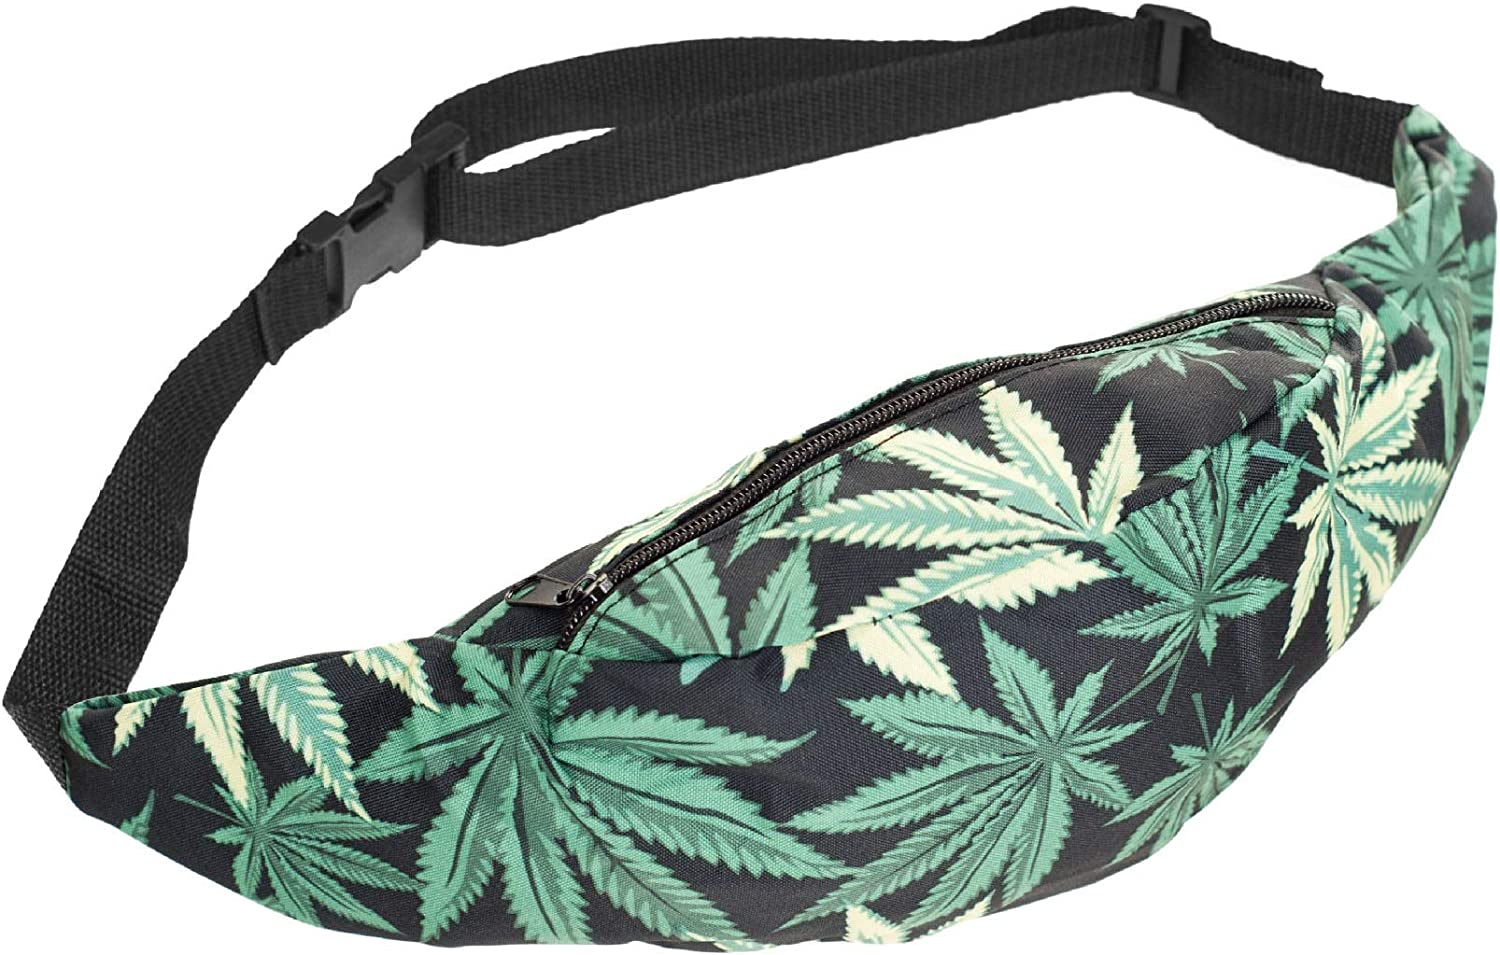 Heard Me Unisex Addicted Cannabis Weed Leaf Fanny Pack Waist Bag Phone Holder Adjustable Running Belt For Cycling,Hiking,Gym